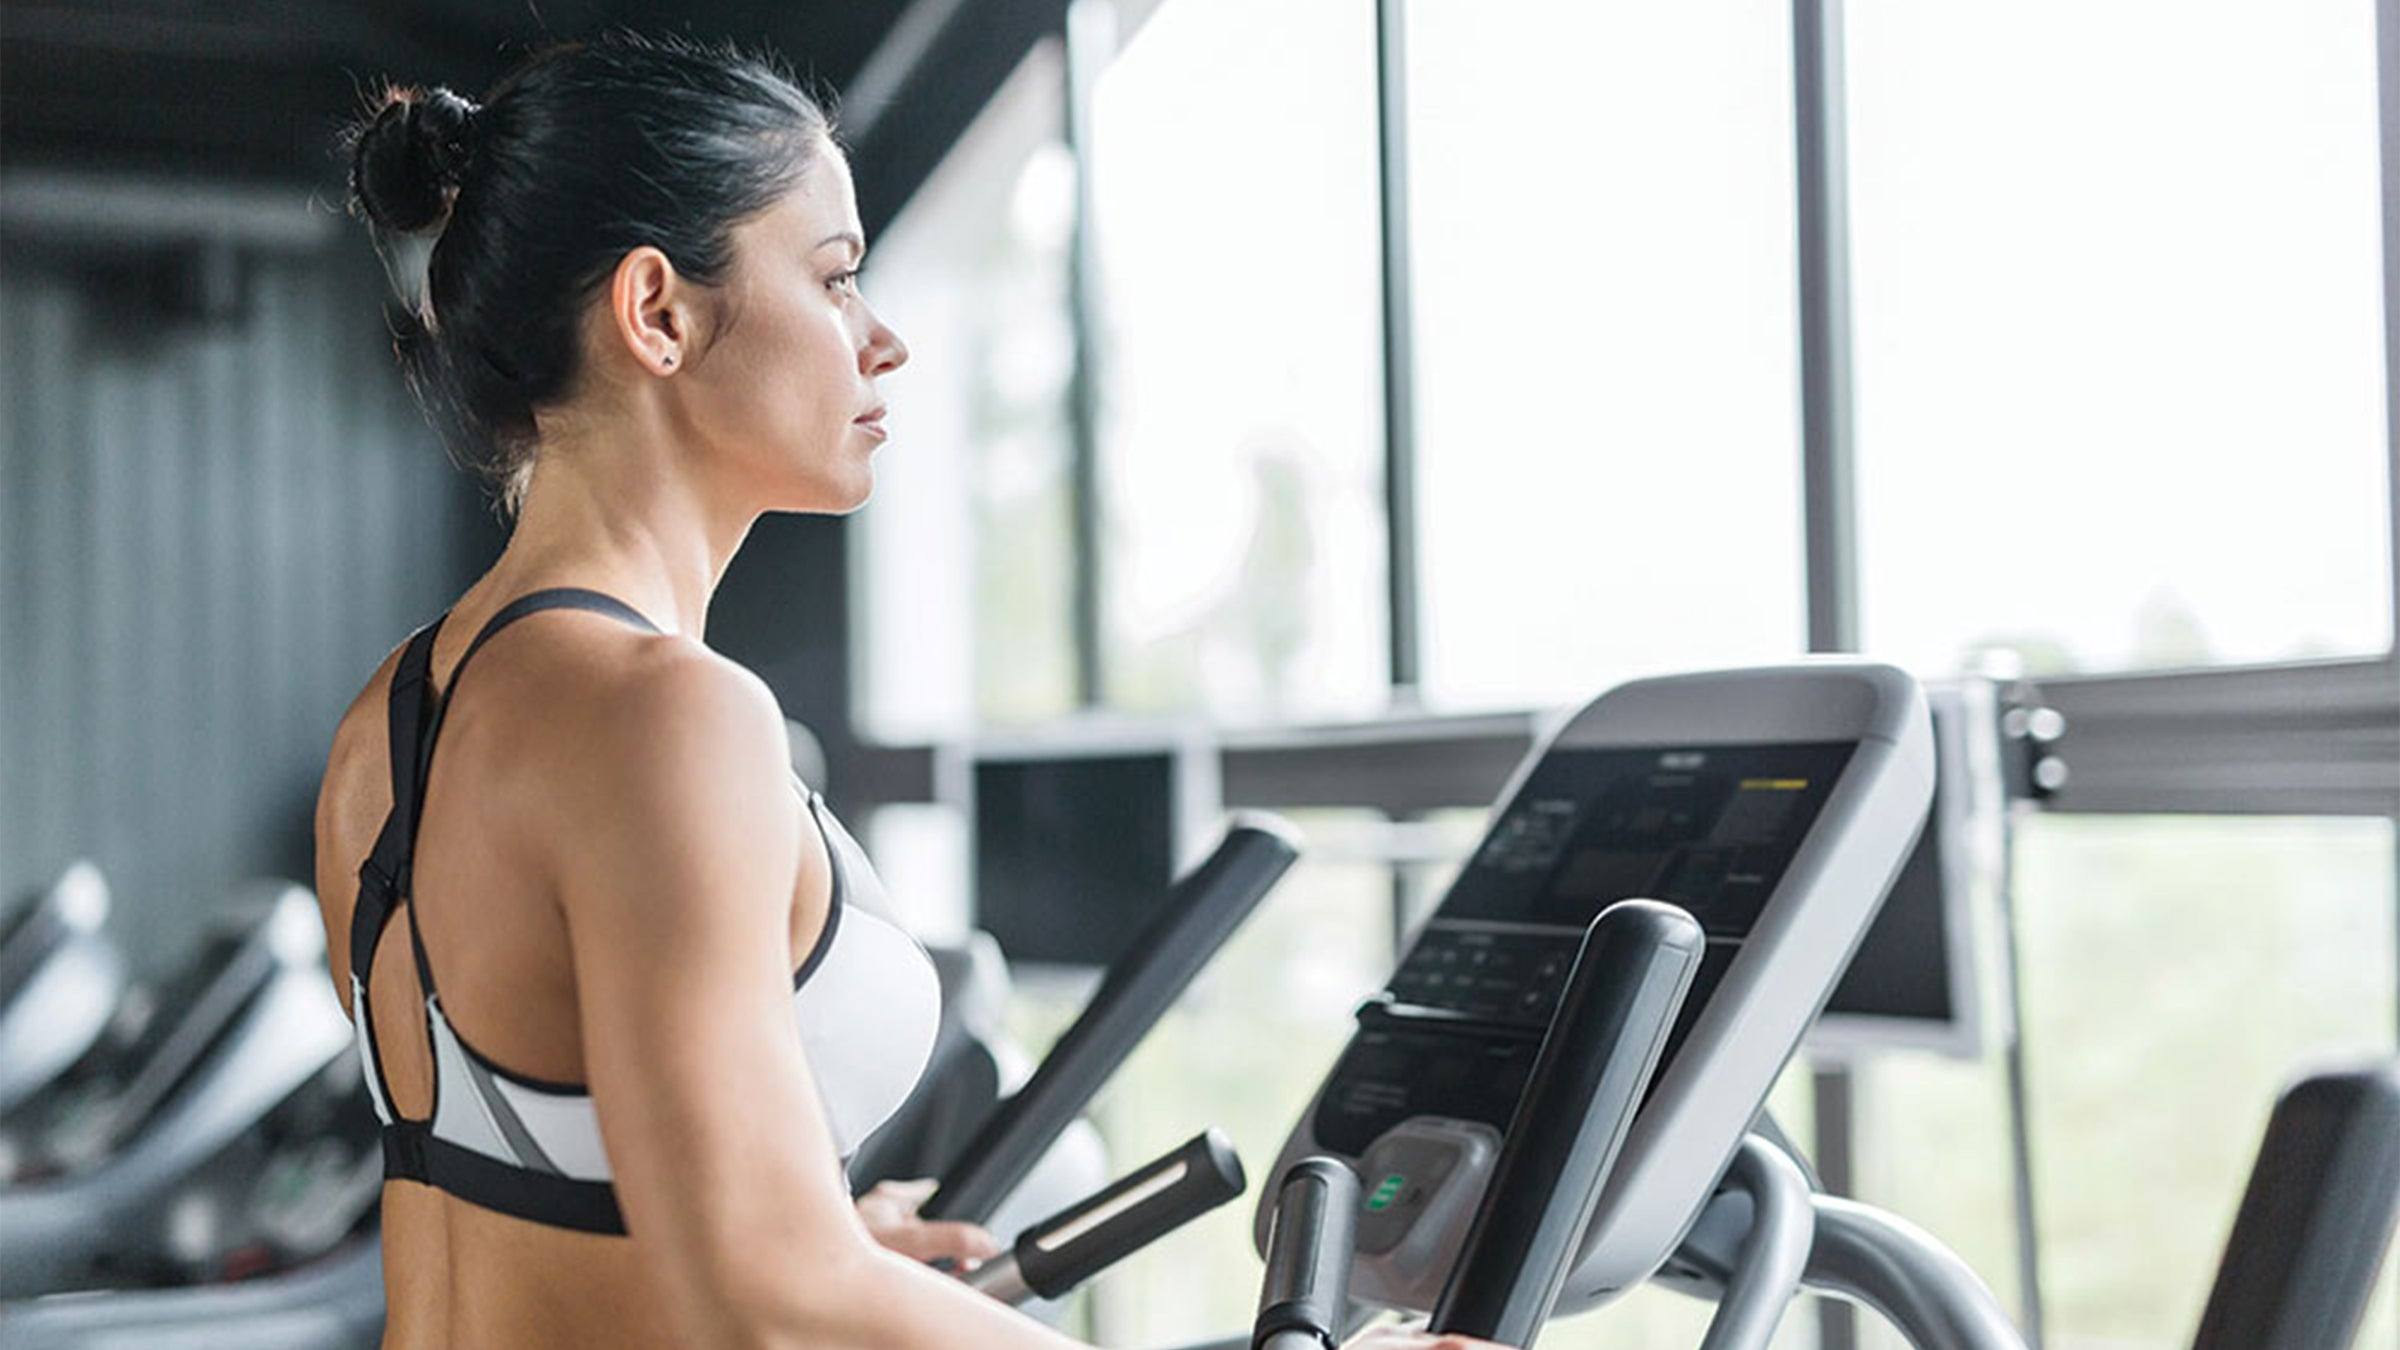 Woman in sports bra on the treadmill at the gym, looking out the window into nature.